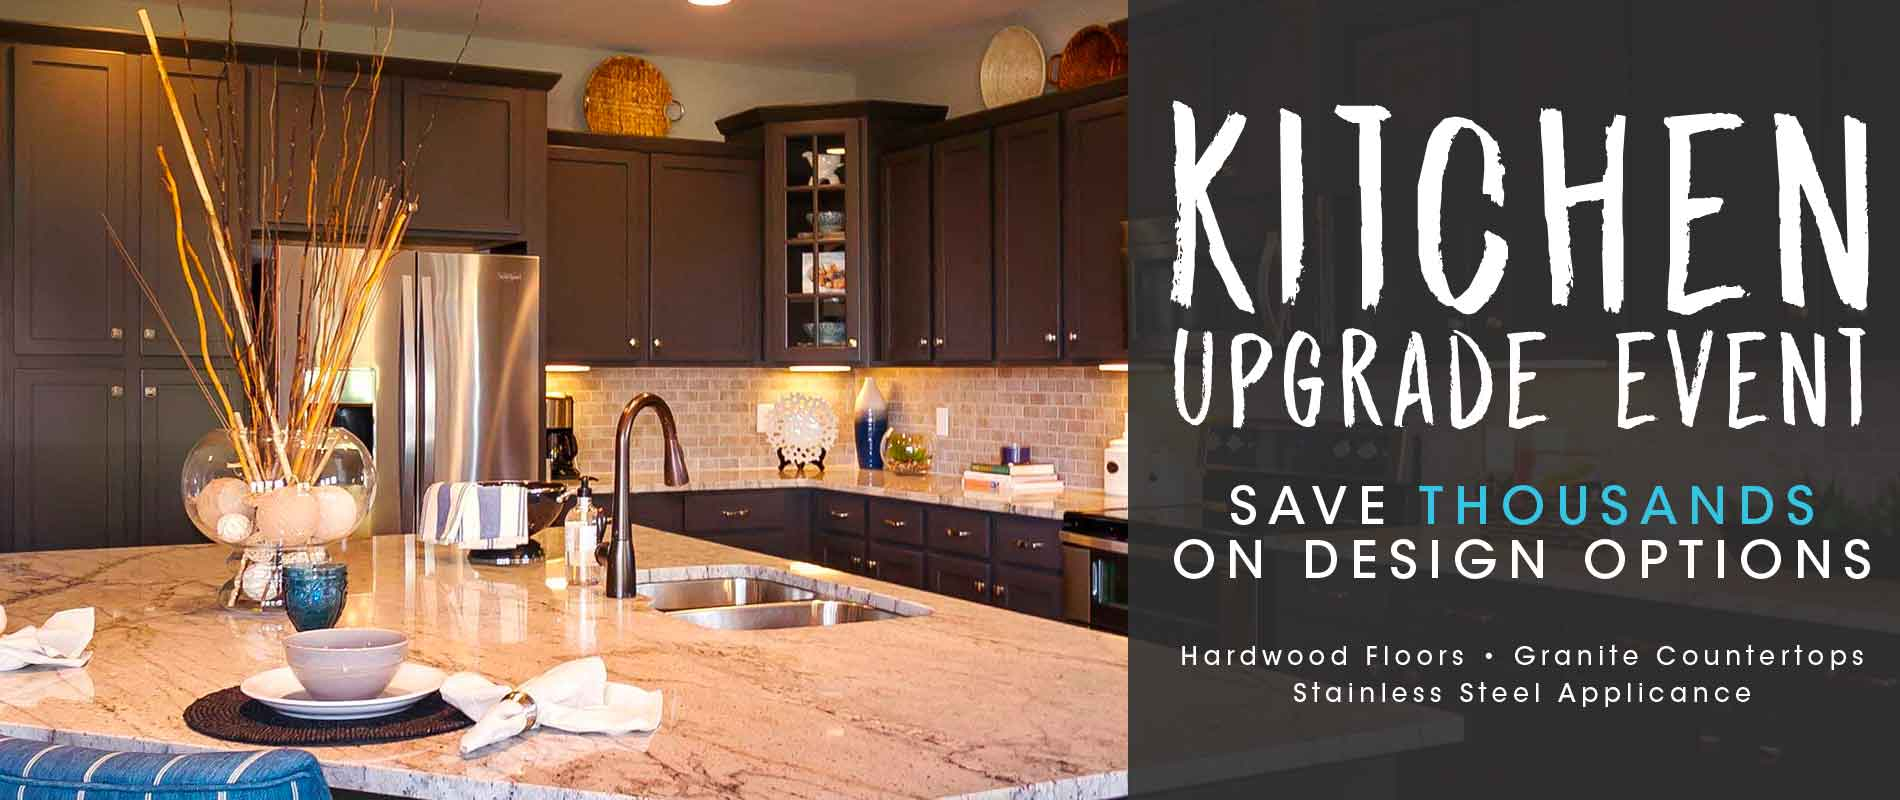 Kitchen Upgrade Event